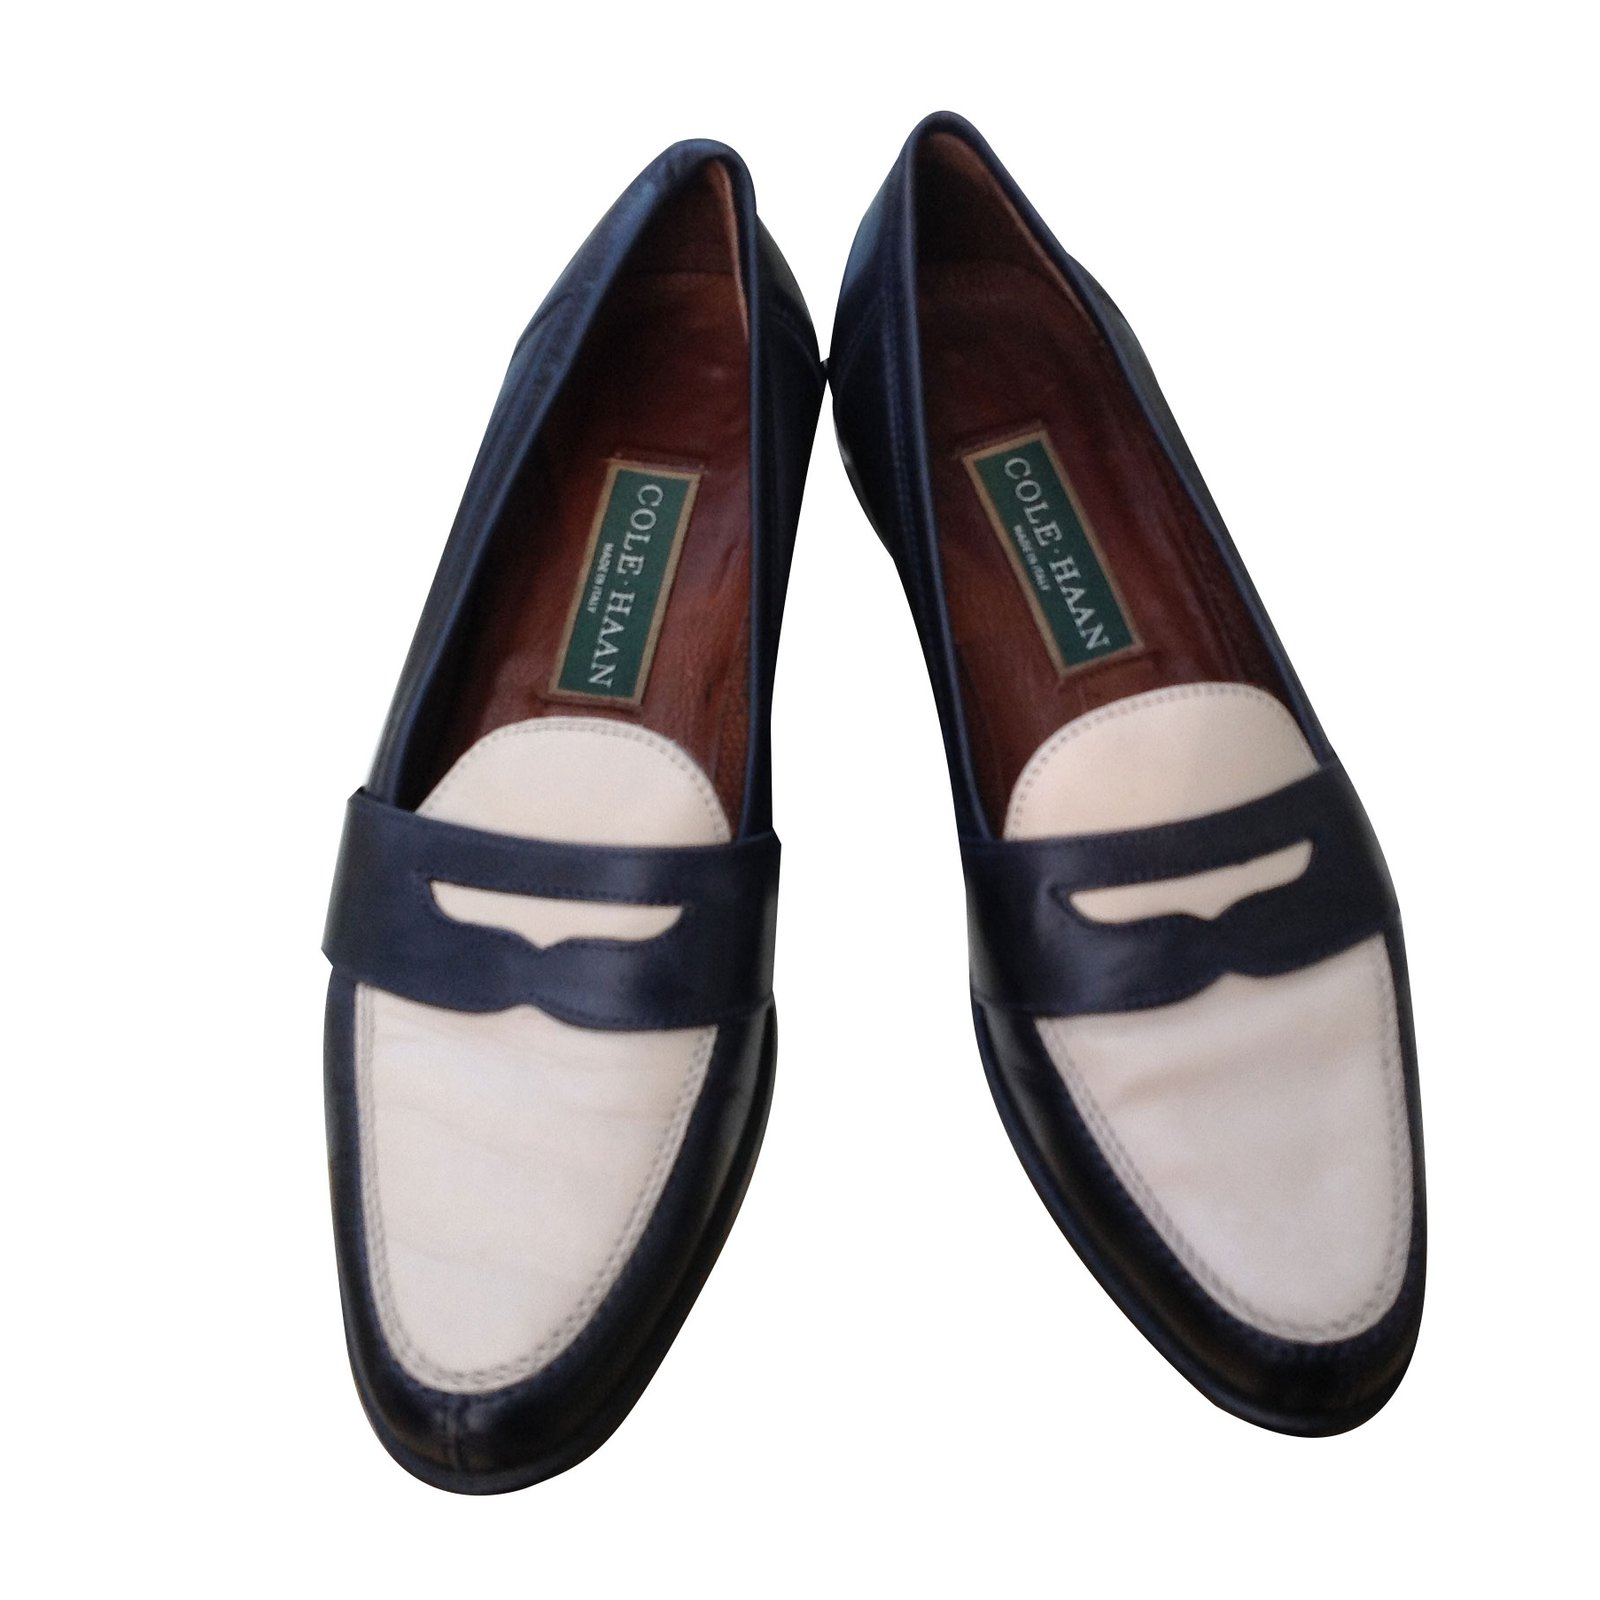 b8ec7db98a5d2 COLE HAAN Black & White Bicolor Penny Loafer Flats